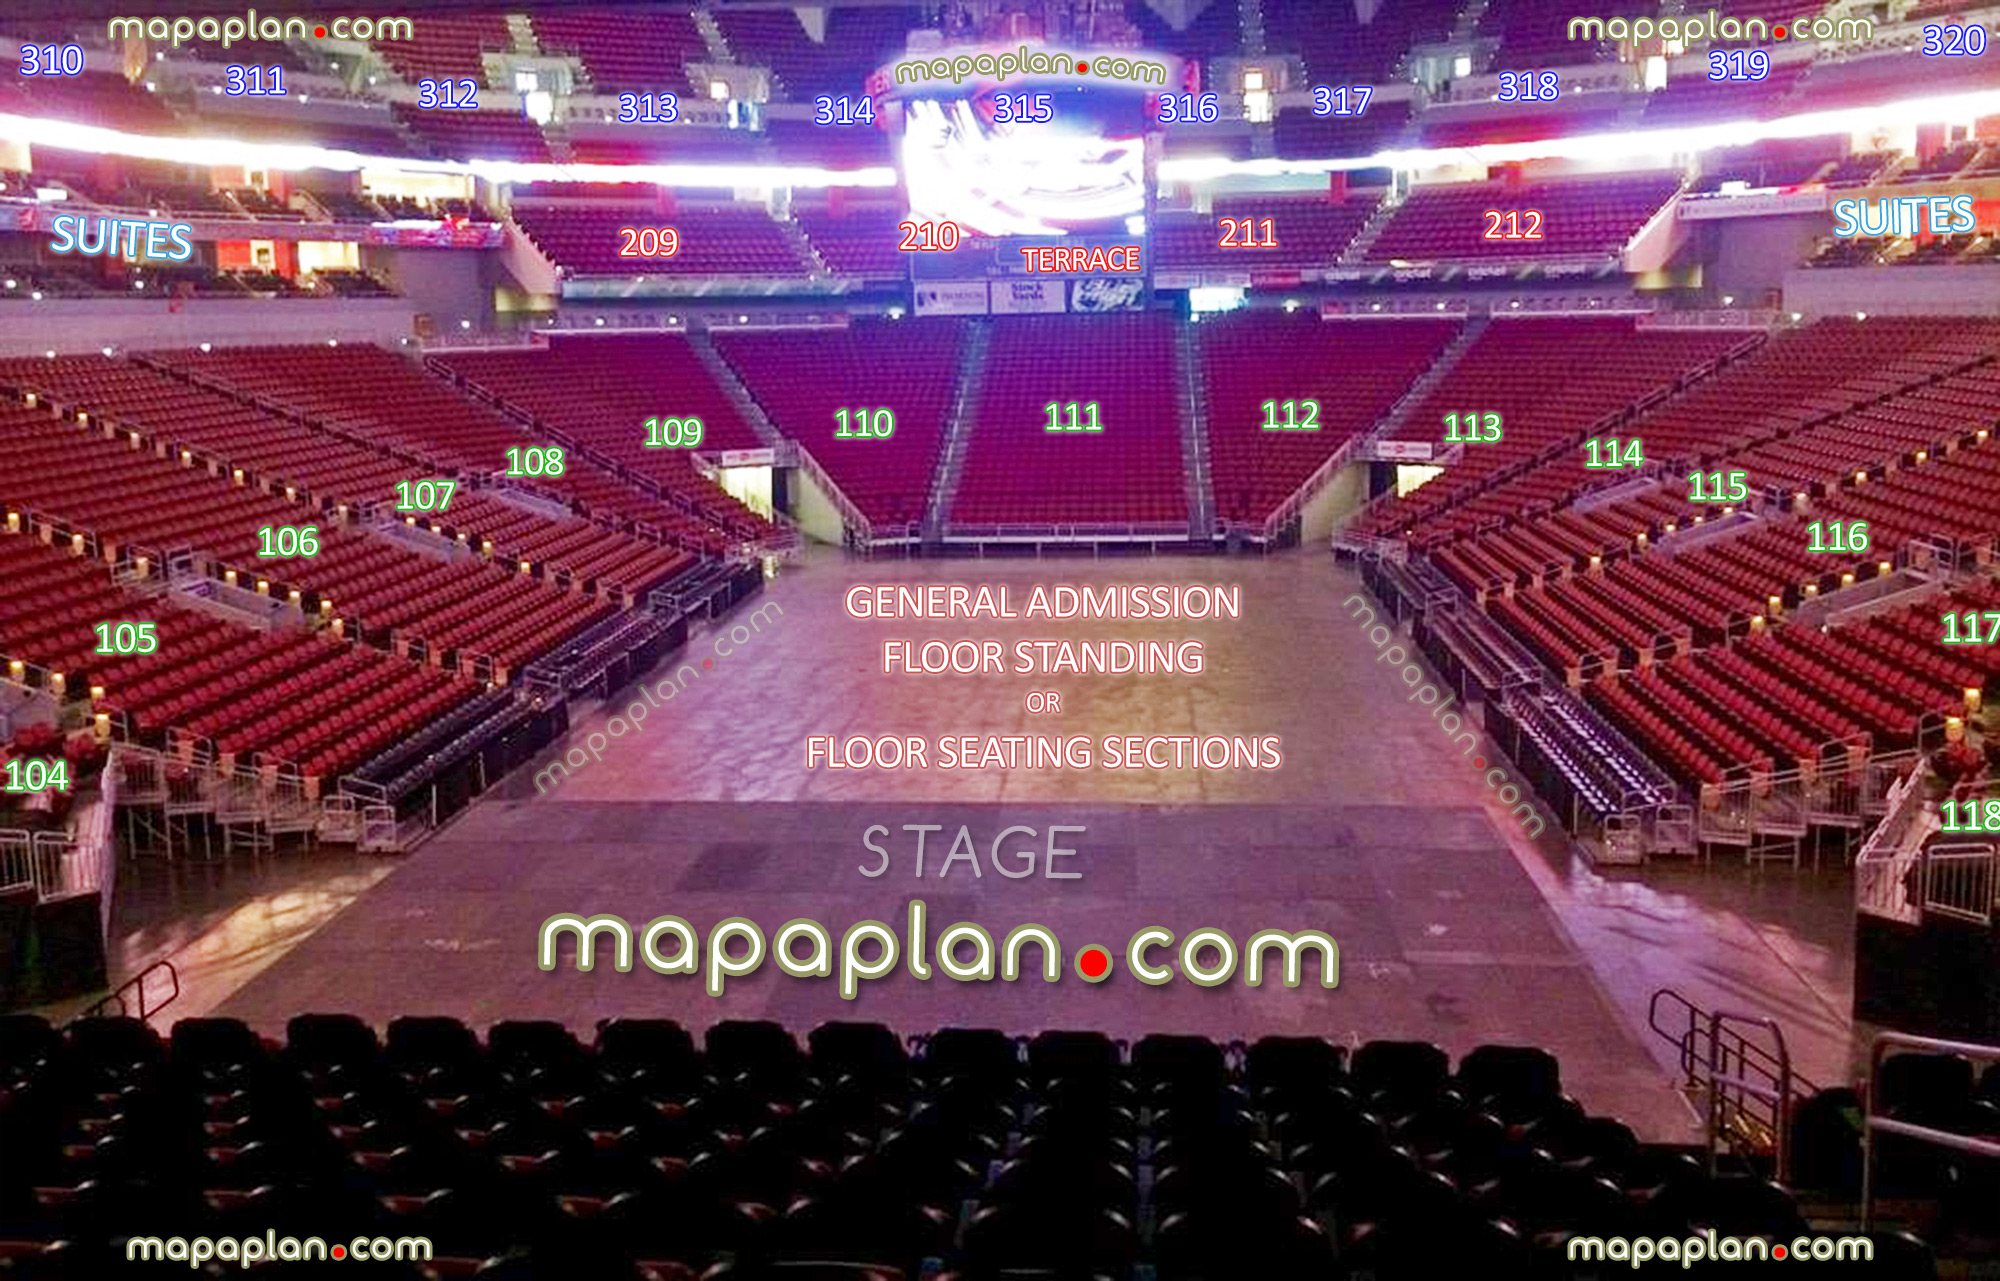 View From Stage Showing Sections Rows Seats Virtual Venue Interactive Inside Tour Concert Interior Picture 100 Lower 200 Terrace